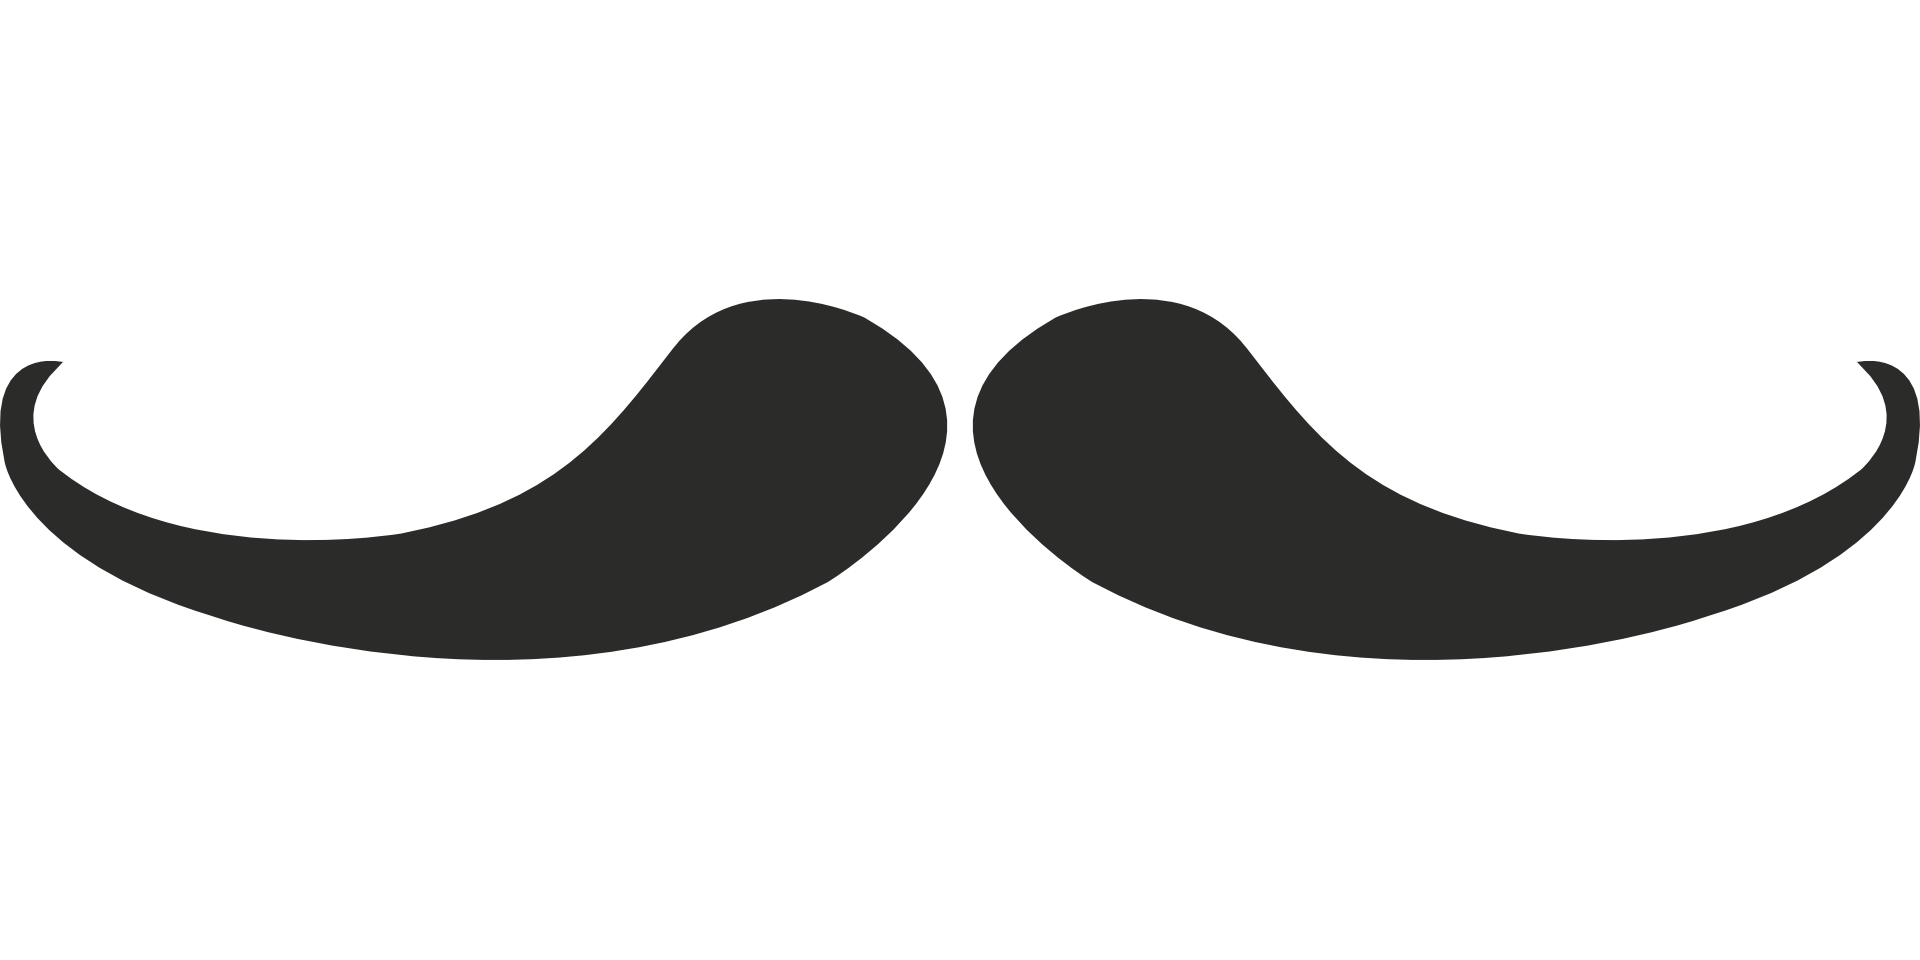 Grey moustaches template free. Moustache clipart mustache italian